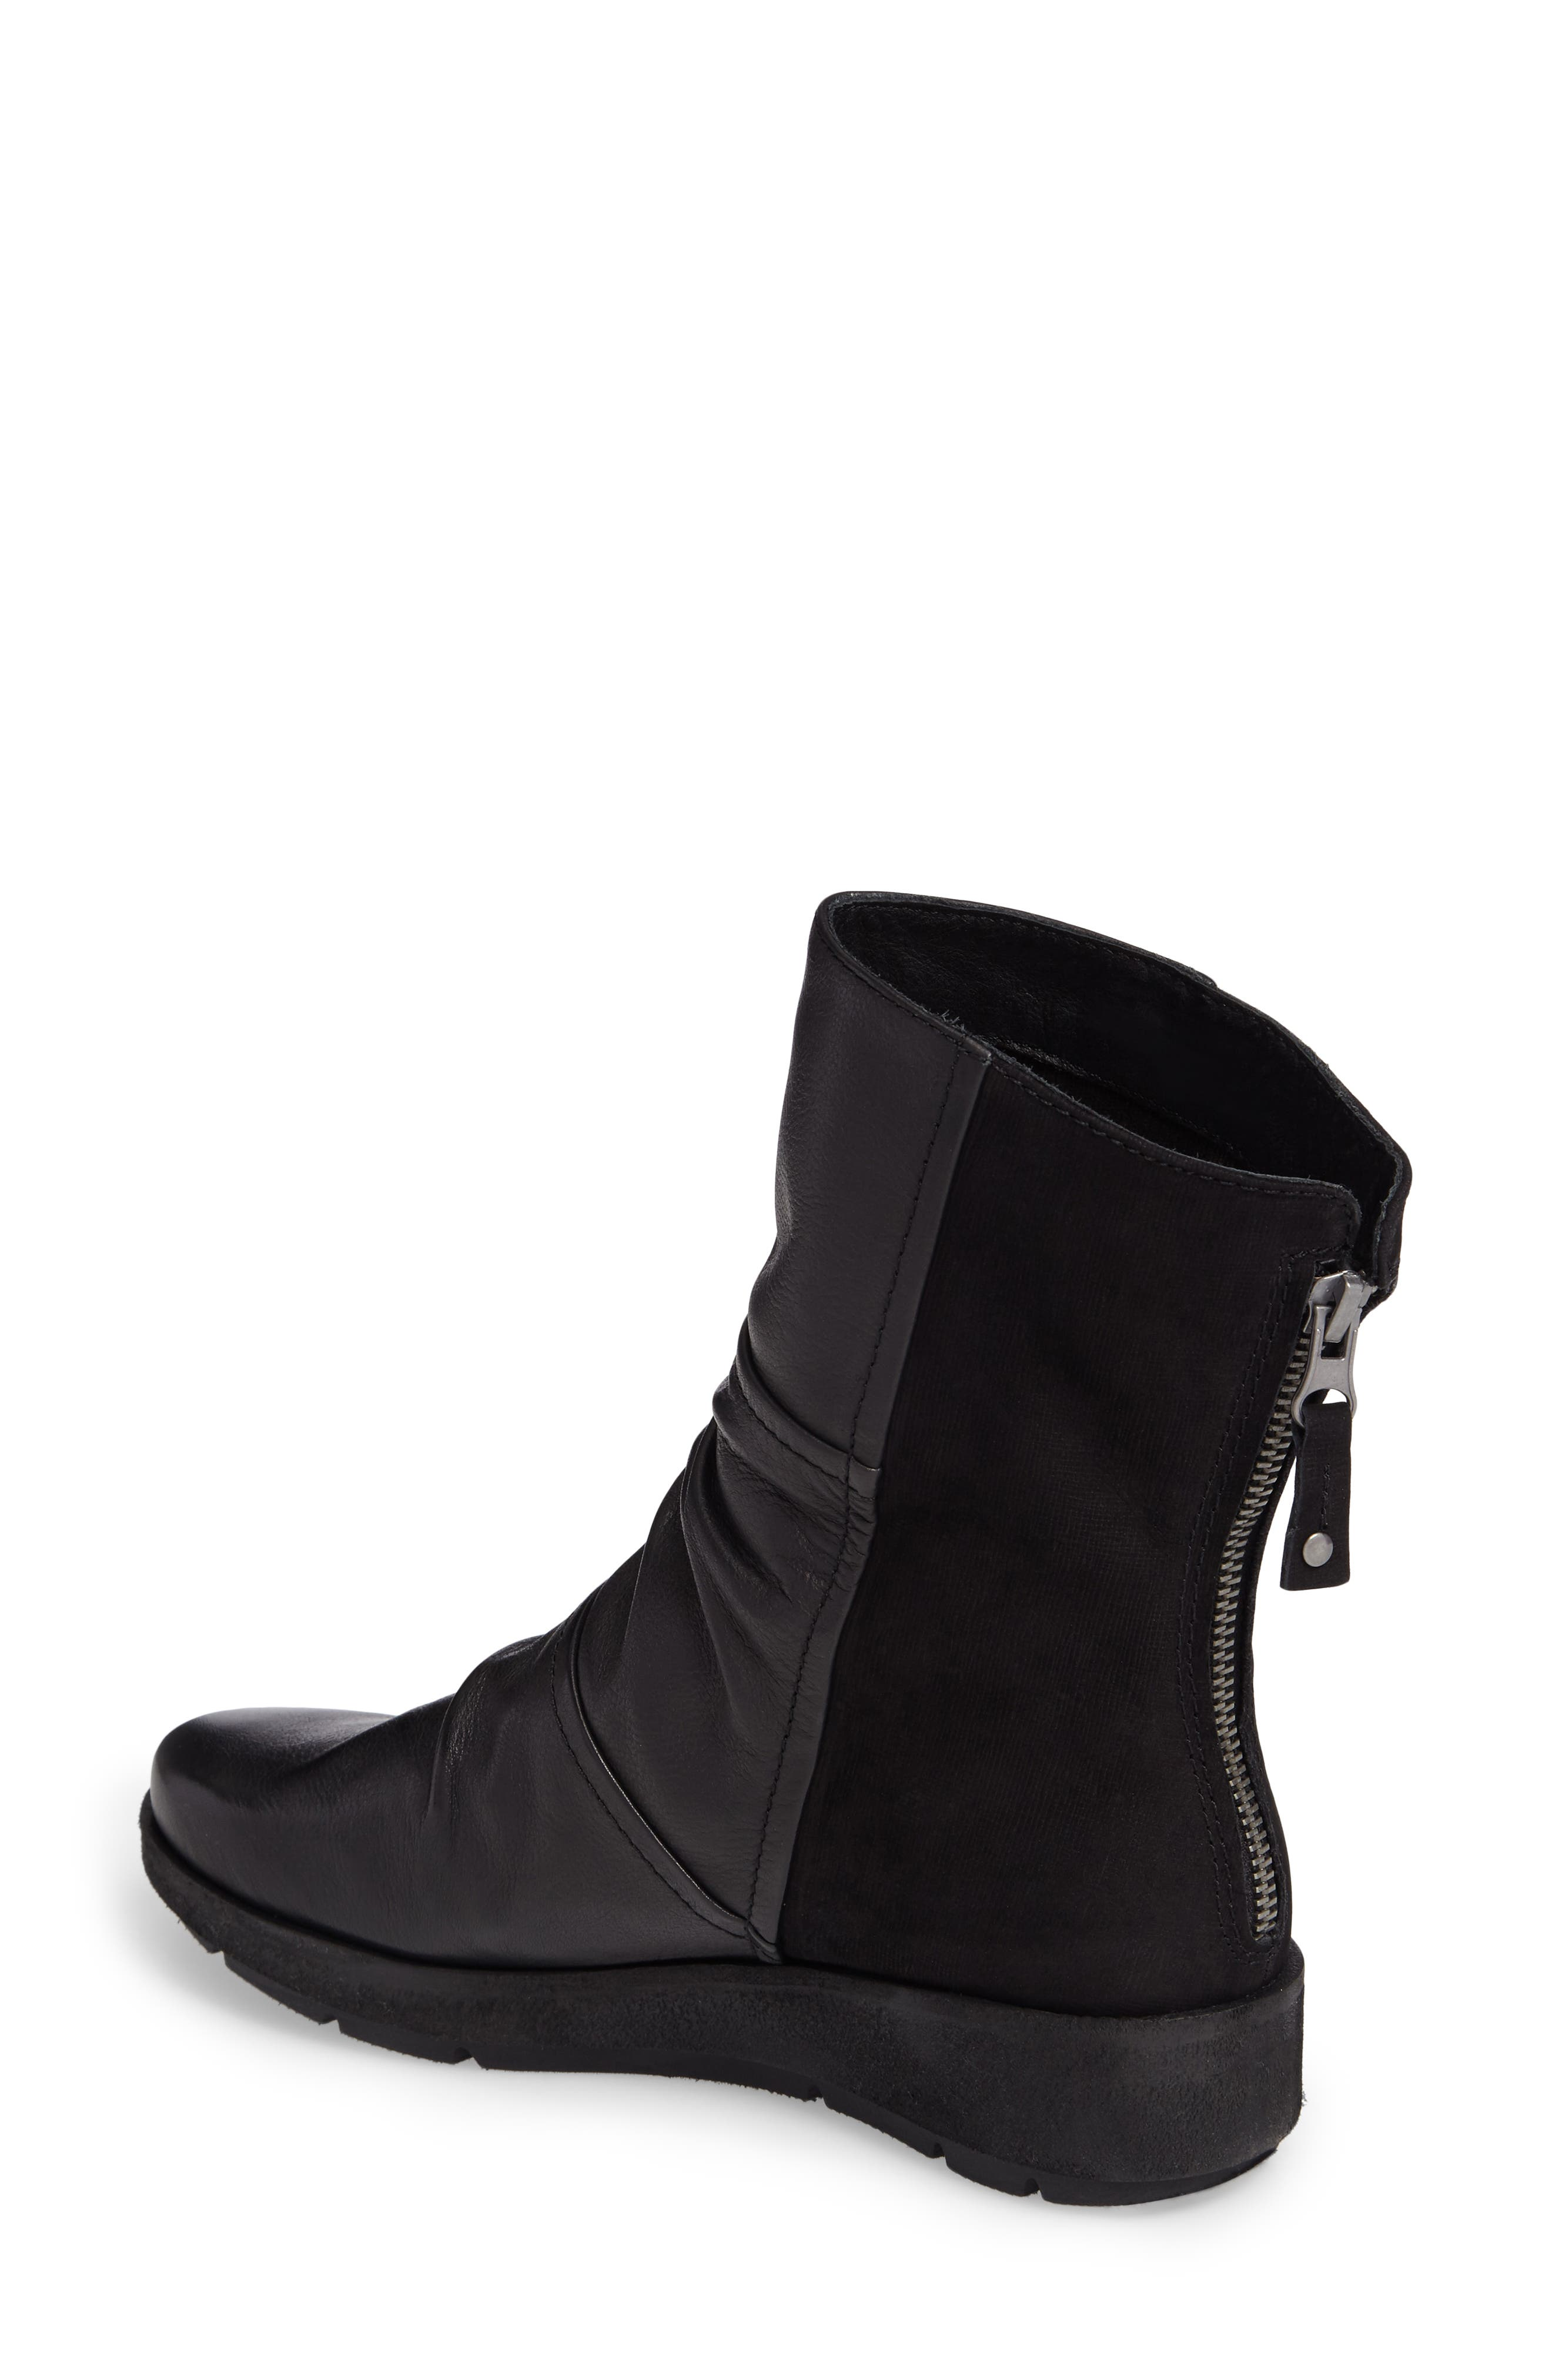 Pilgrim Boot,                             Alternate thumbnail 2, color,                             Black Leather